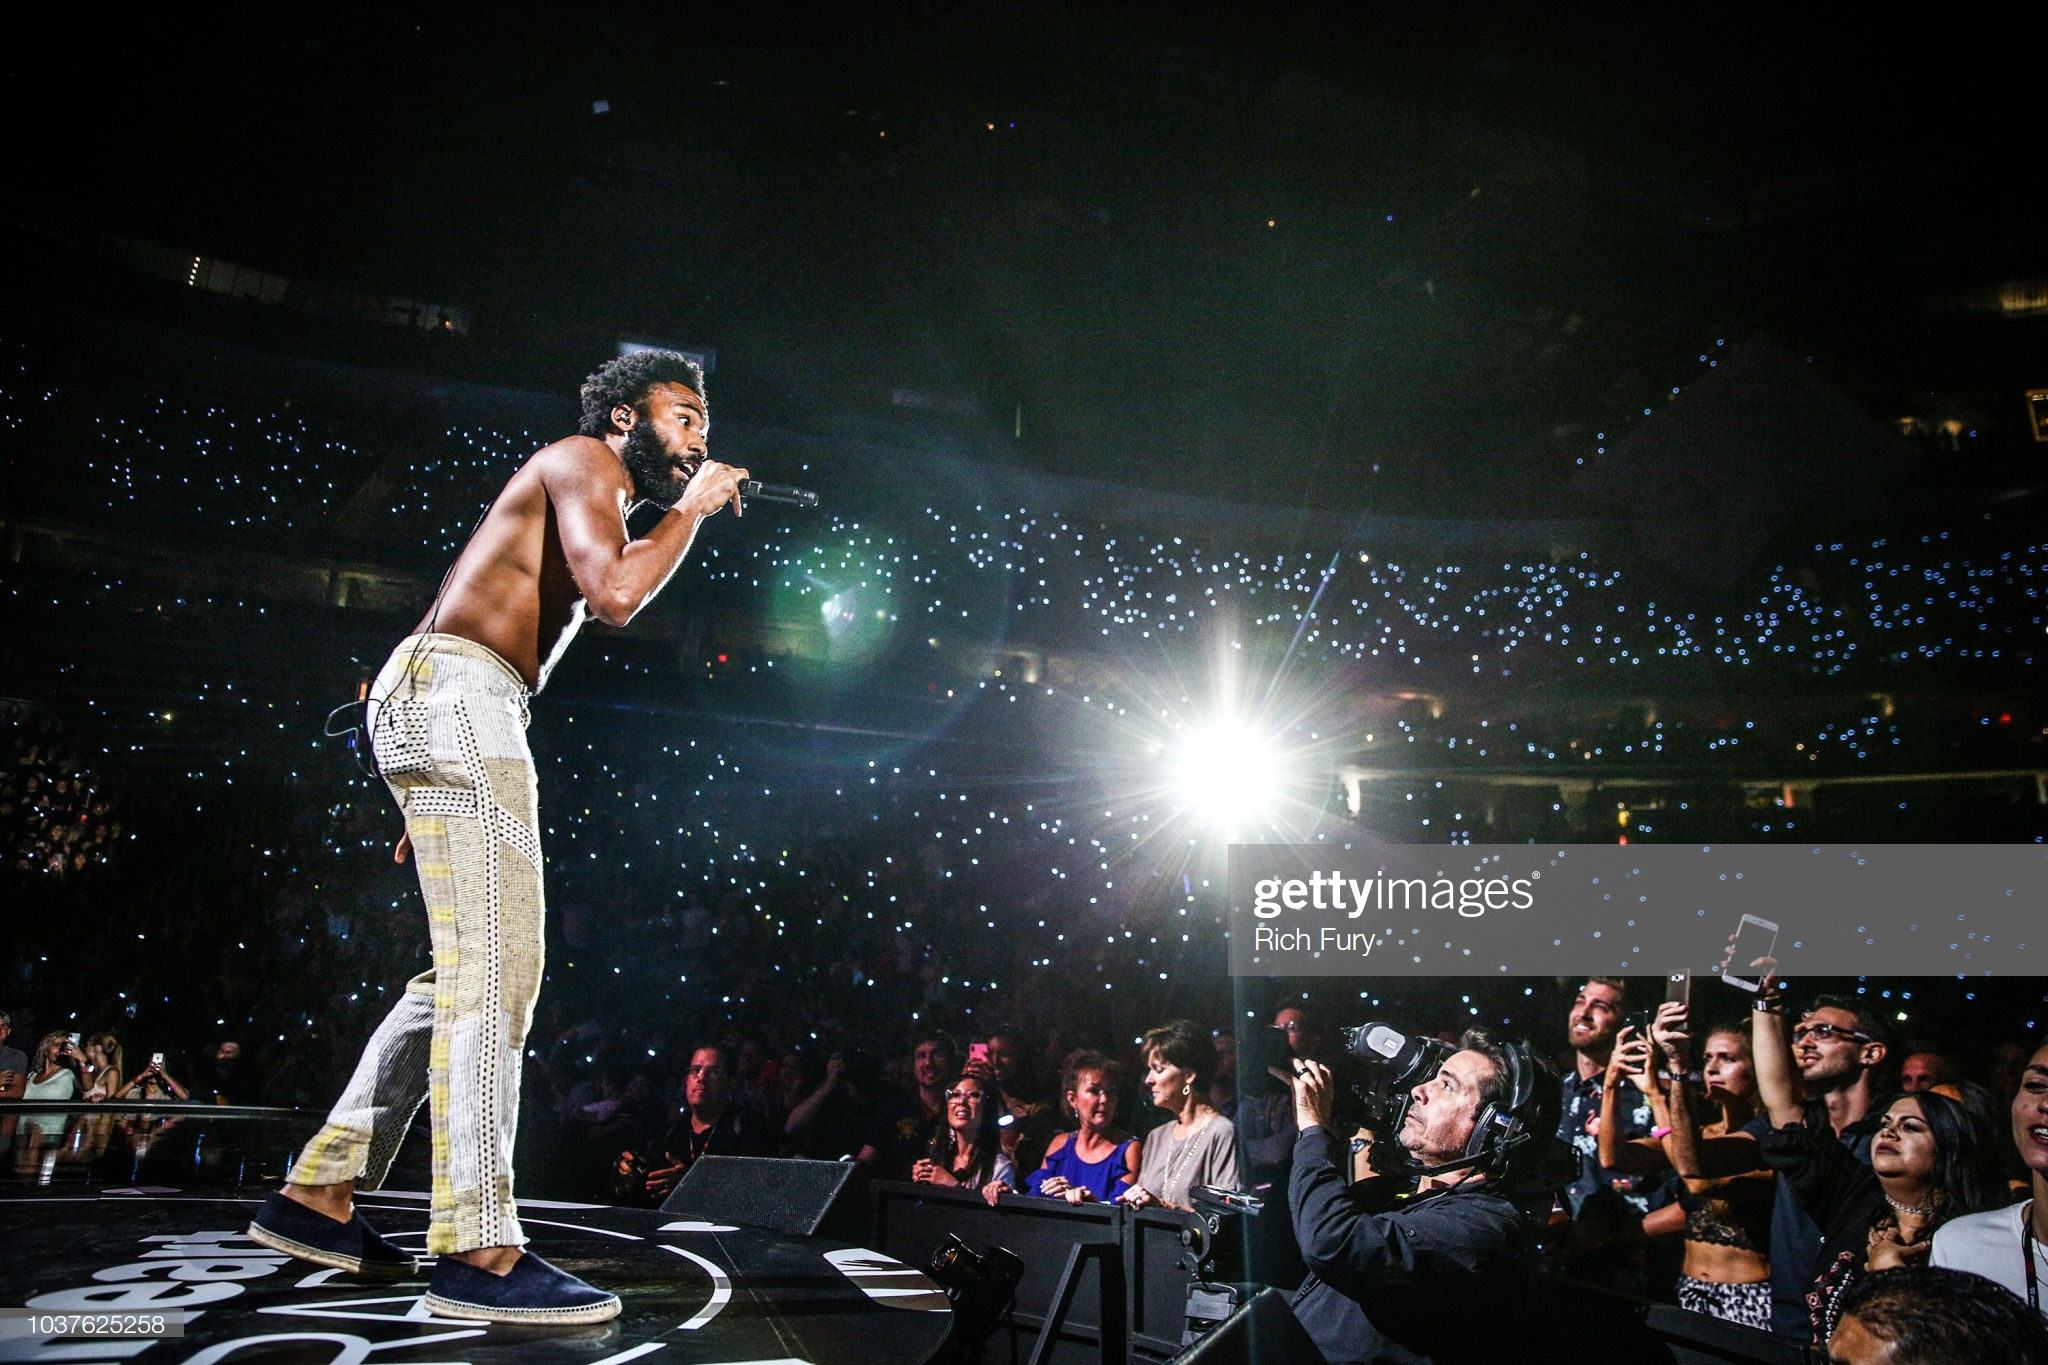 gettyimages-1037625258-2048x2048.jpg